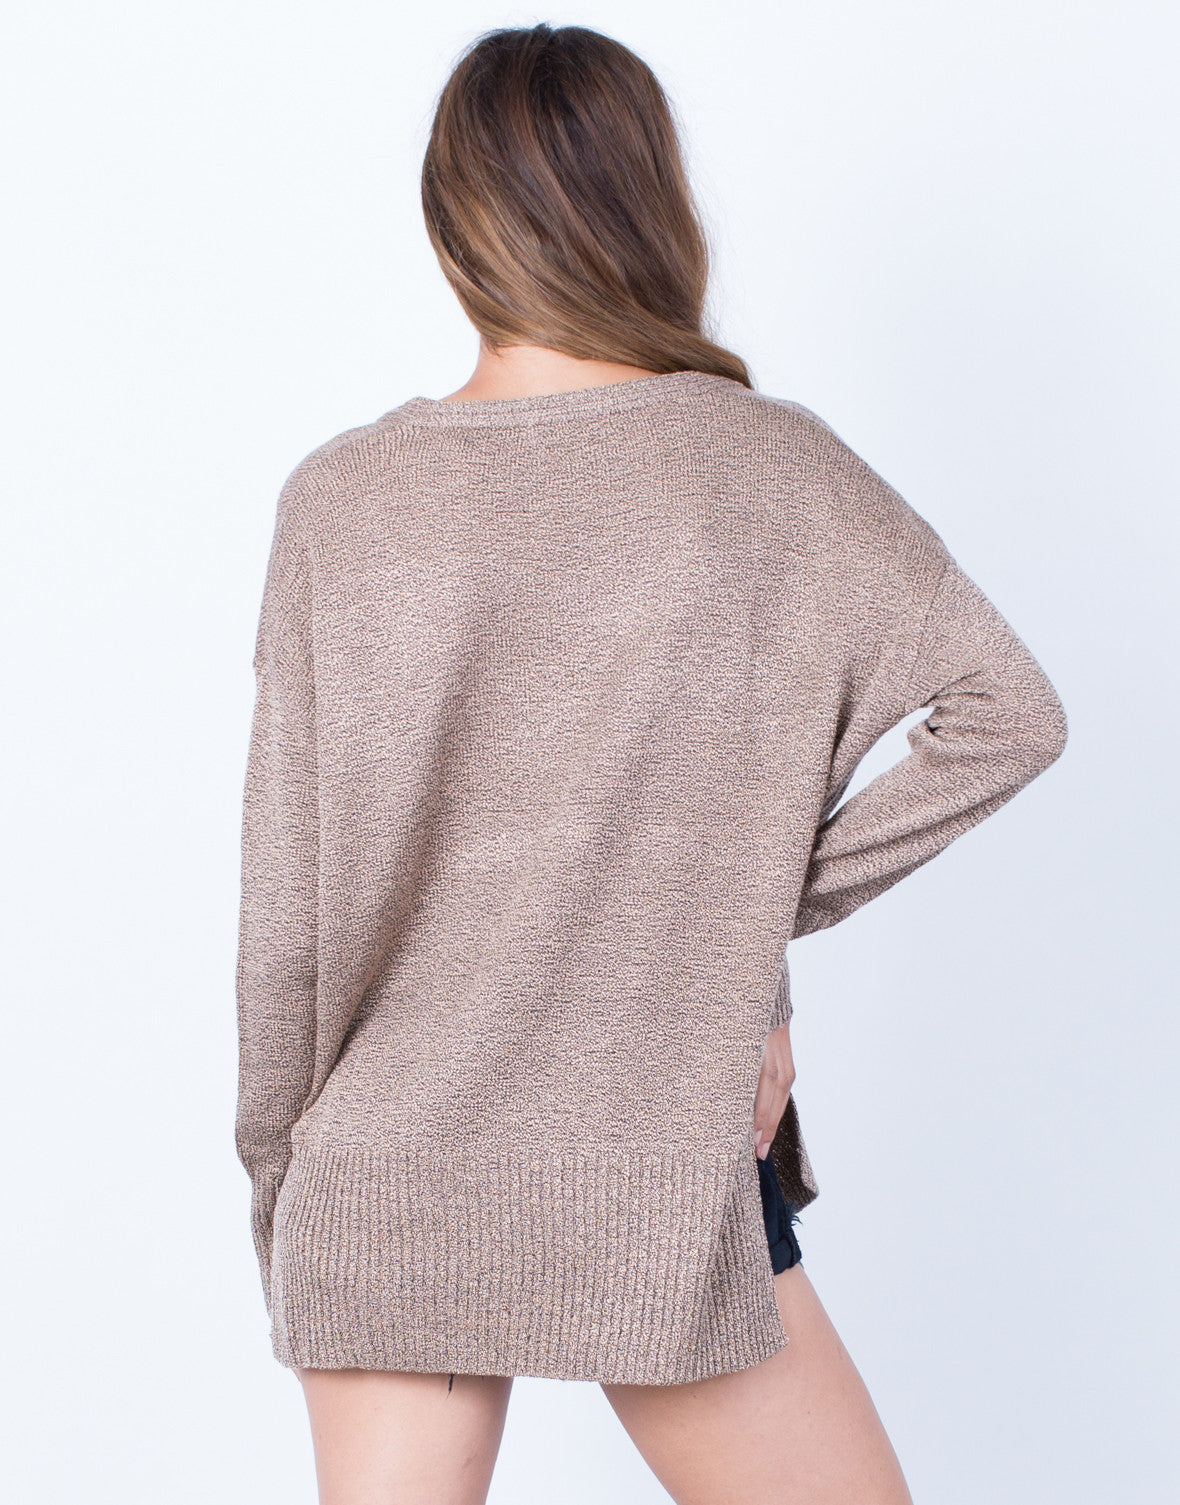 Back View of Taupe it Off Sweater Top